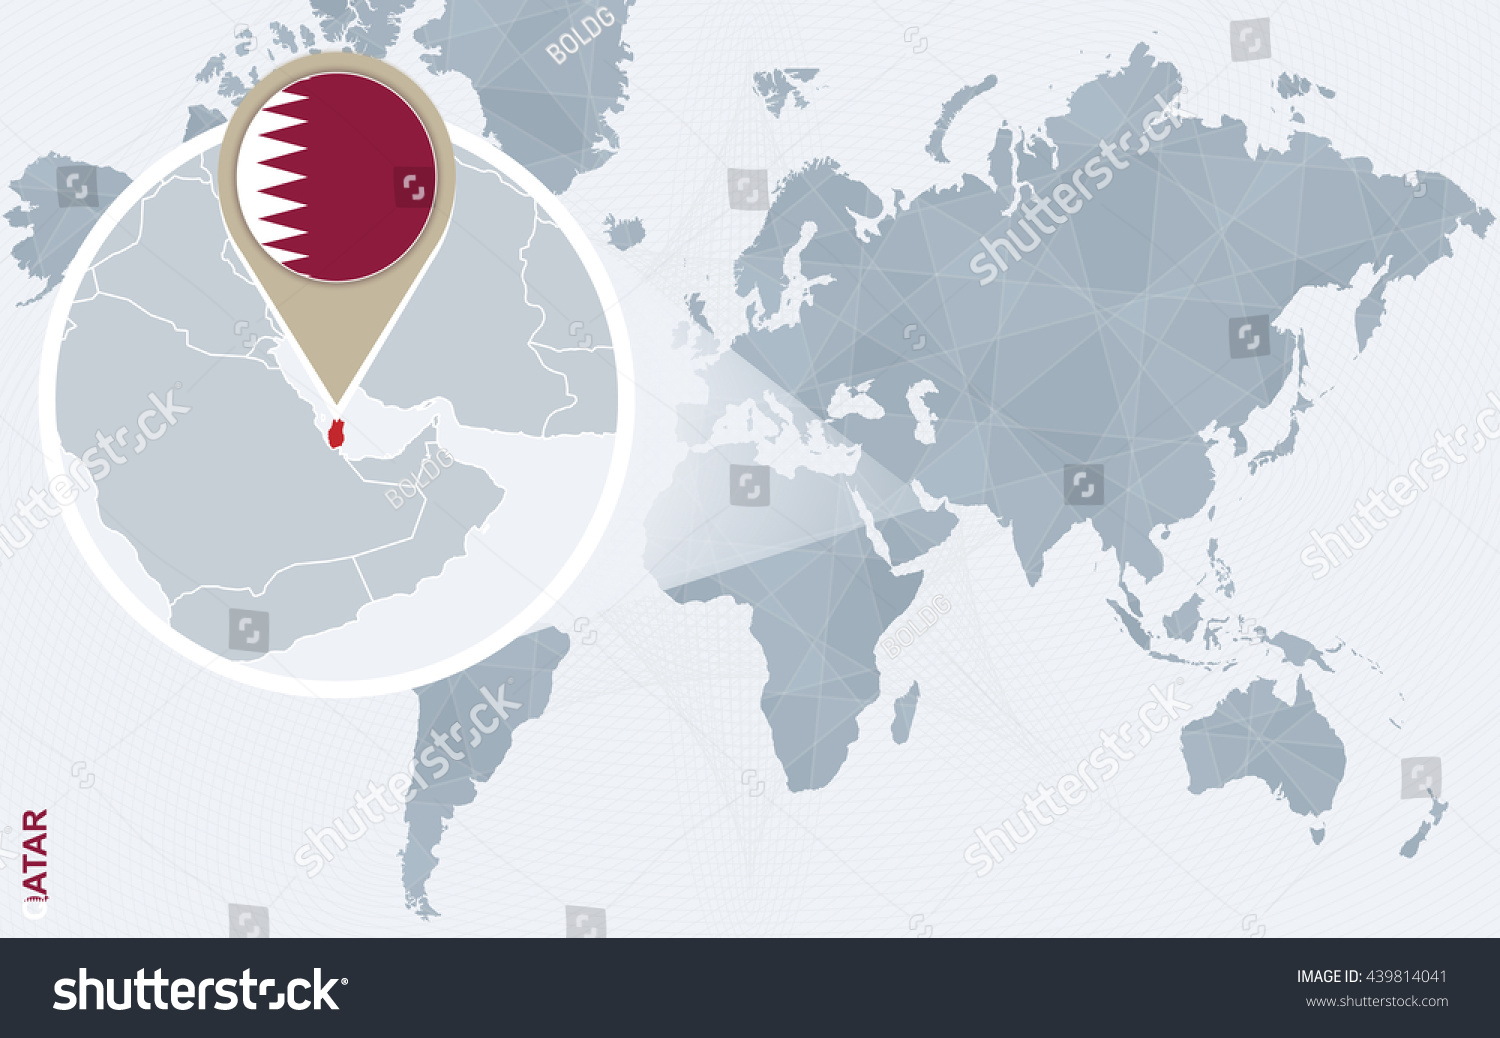 Abstract blue world map magnified qatar stock vector royalty free abstract blue world map with magnified qatar qatar flag and map vector illustration gumiabroncs Images